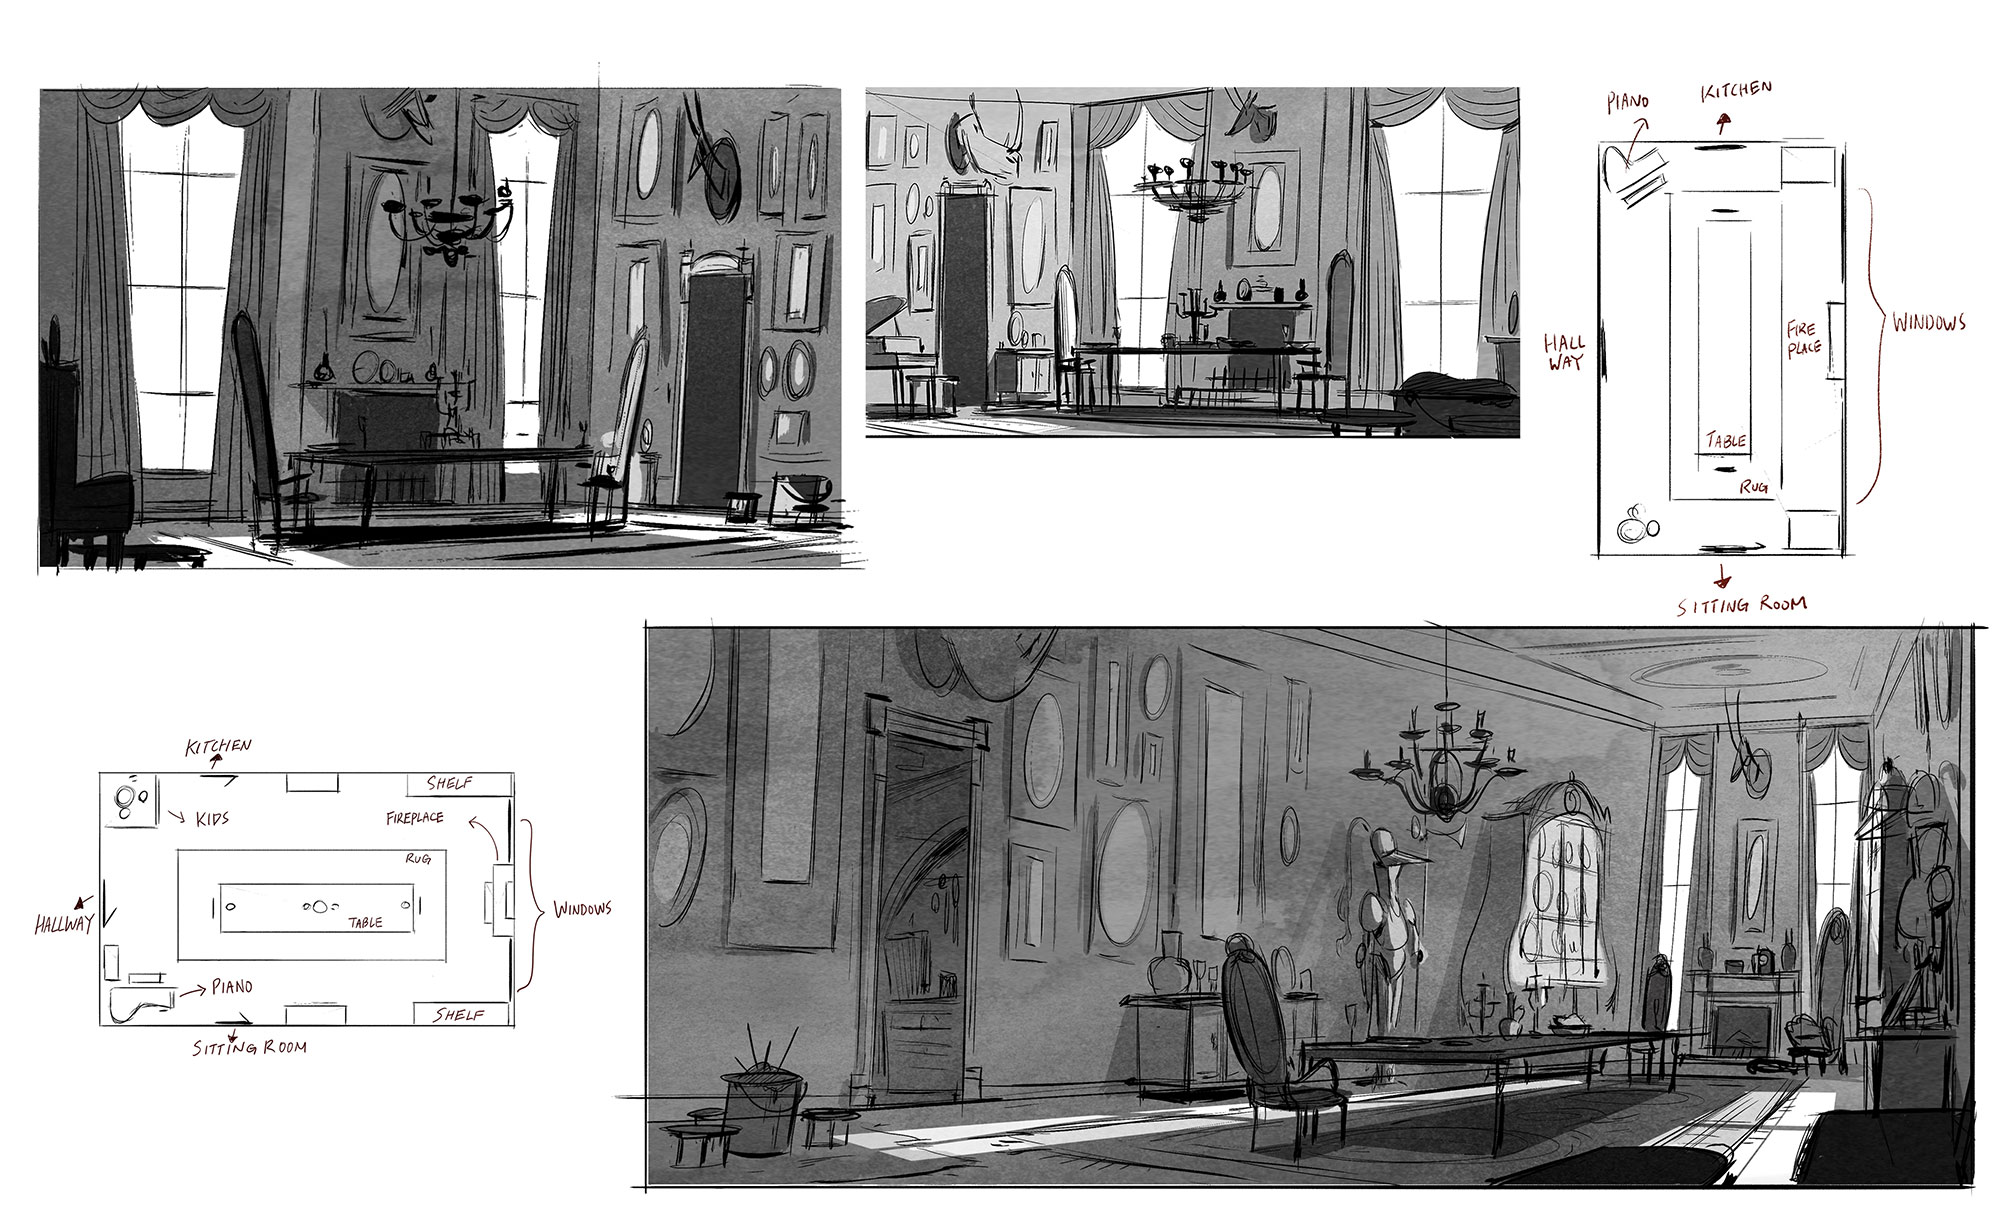 Concept artwork for the Willoughby house by Mike Chen.